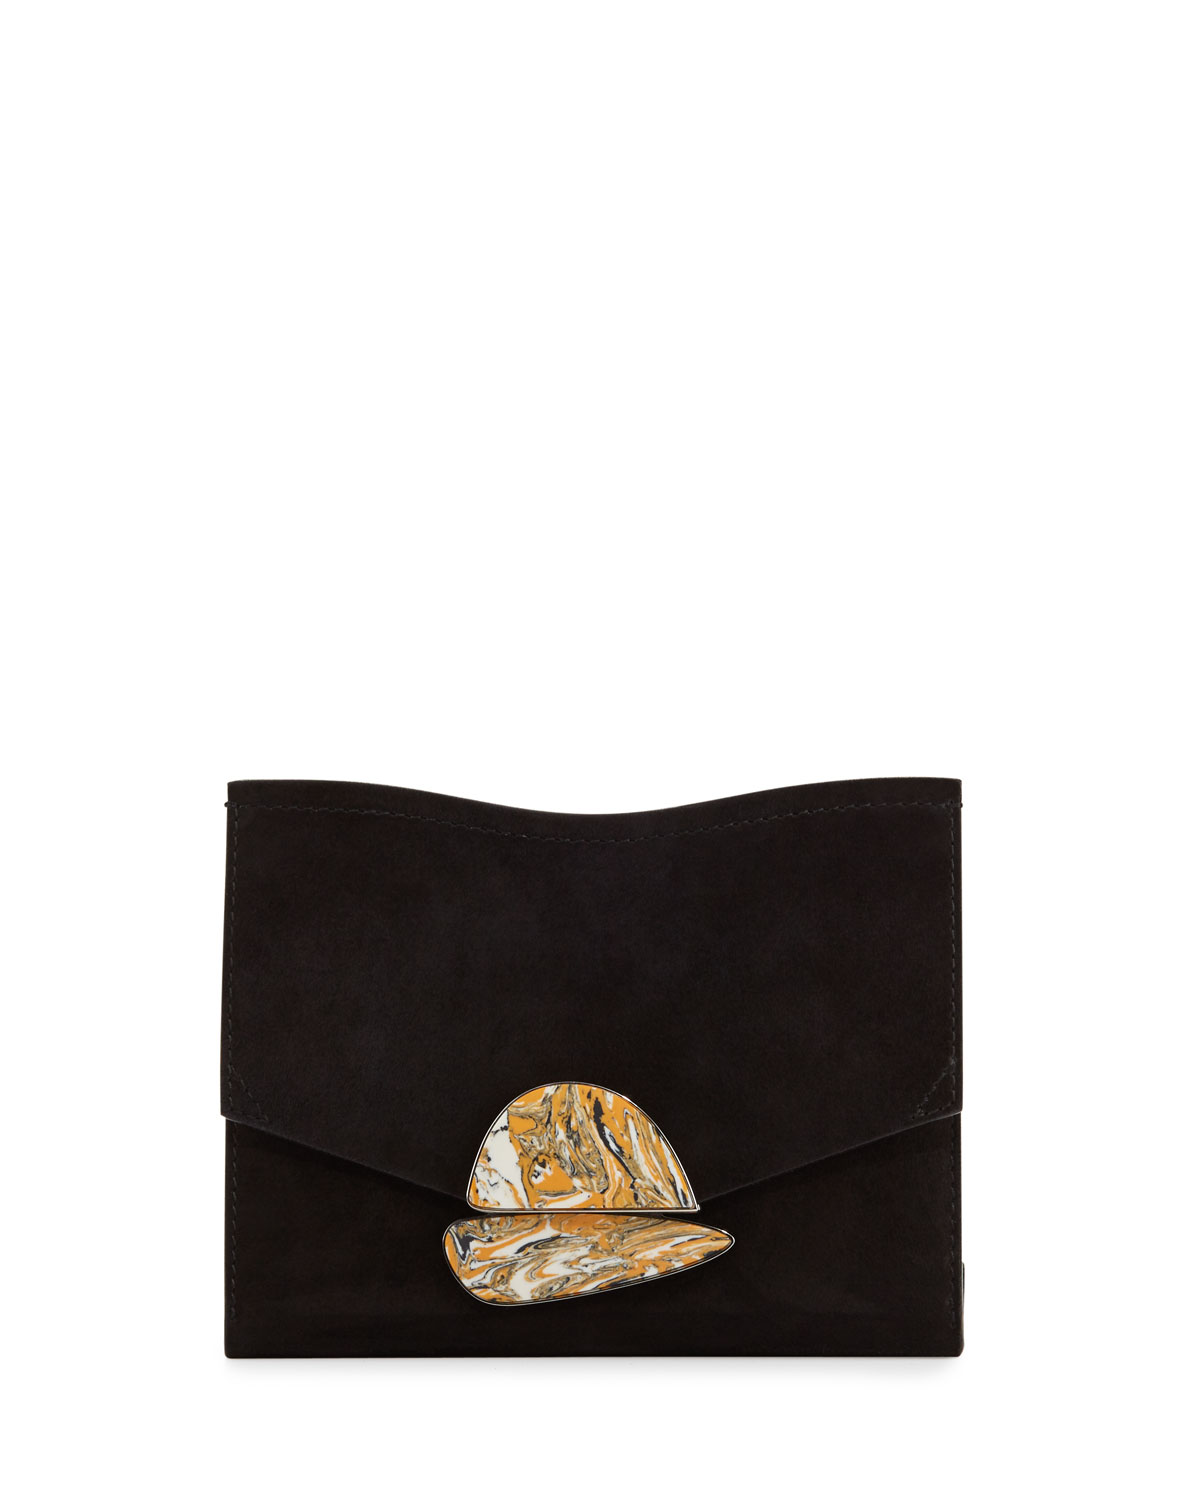 New Small Suede Clutch Bag Black